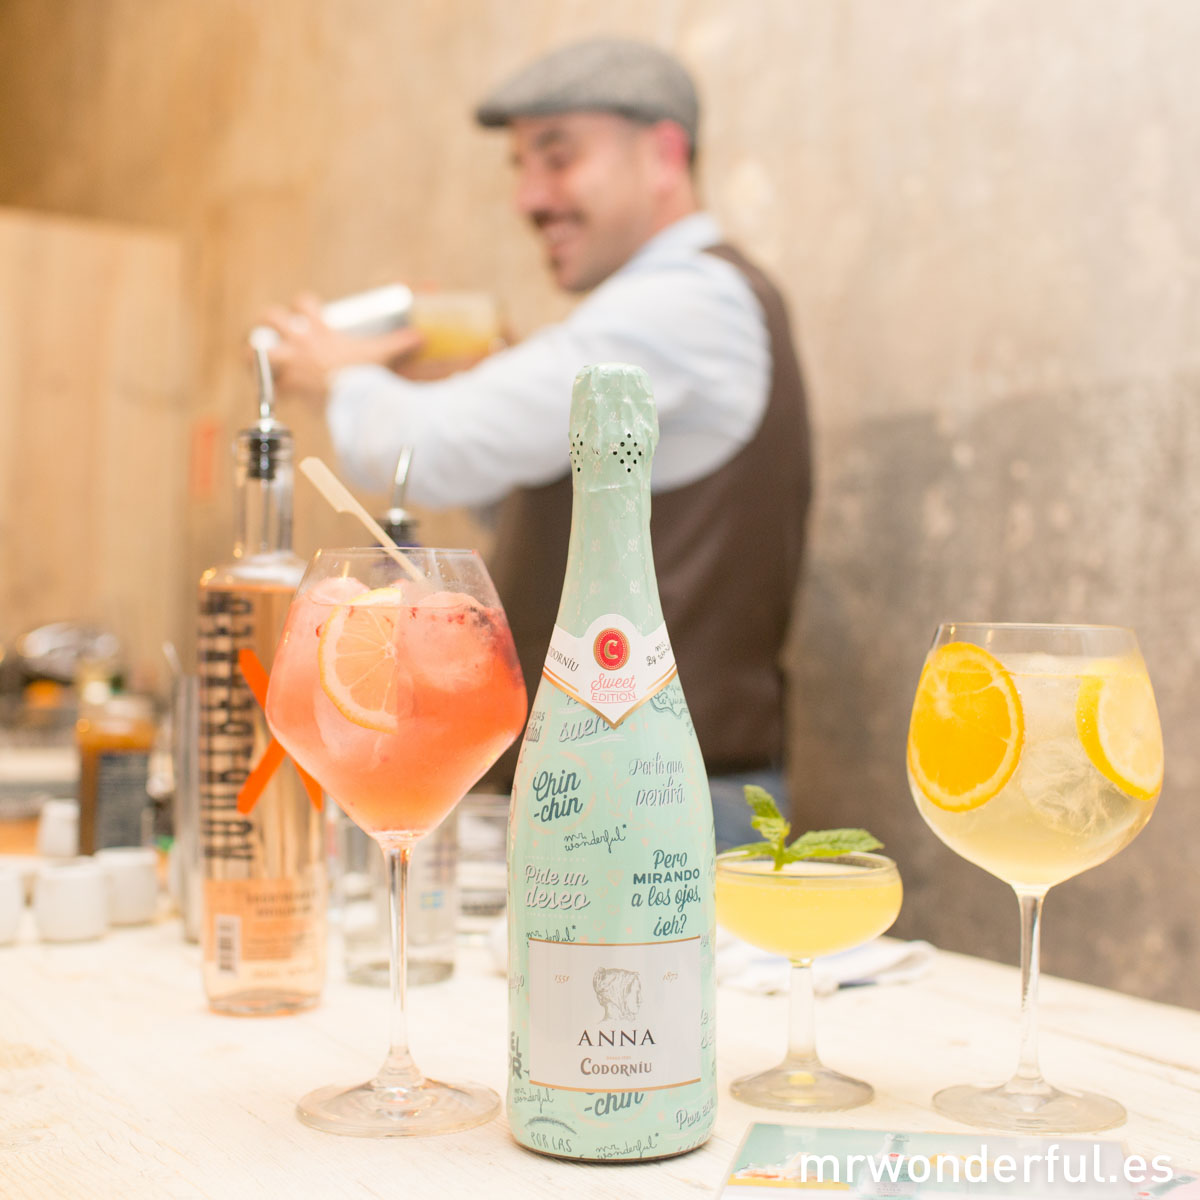 mrwonderful_evento-codorniu-sweet-edition-cocktails_canela-fina-2016-41